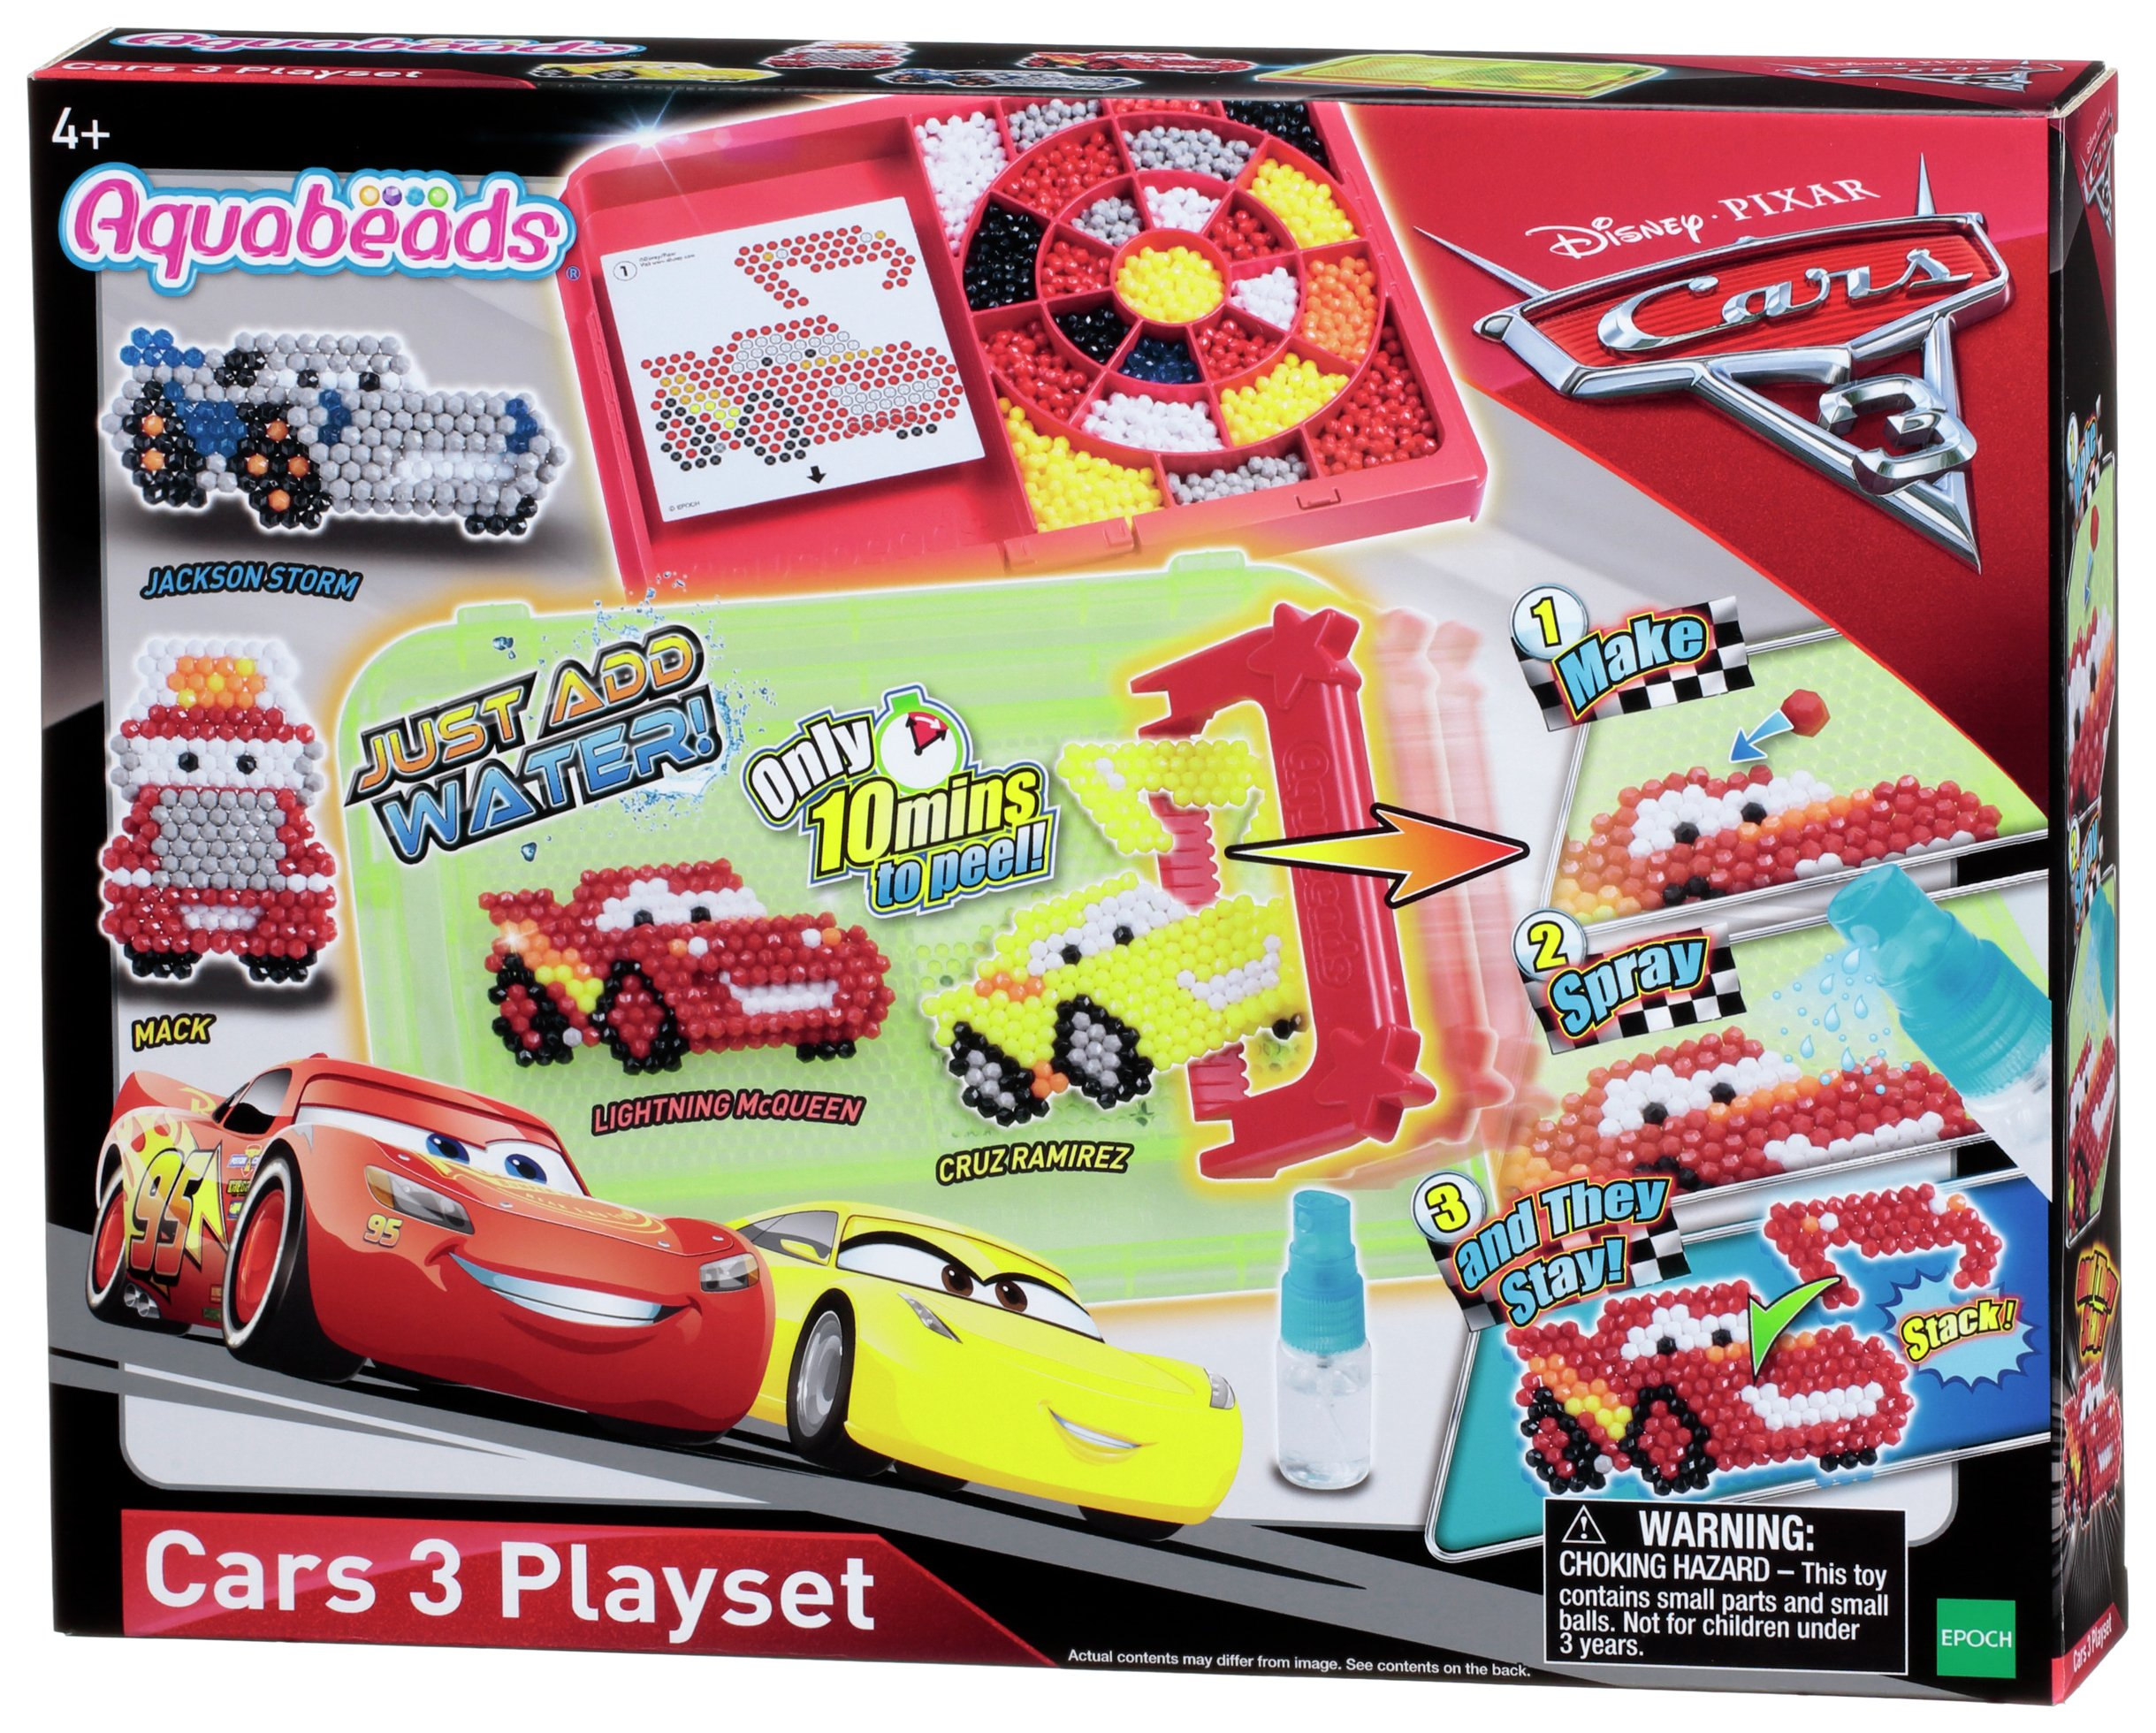 aquabeads-cars-3-playset